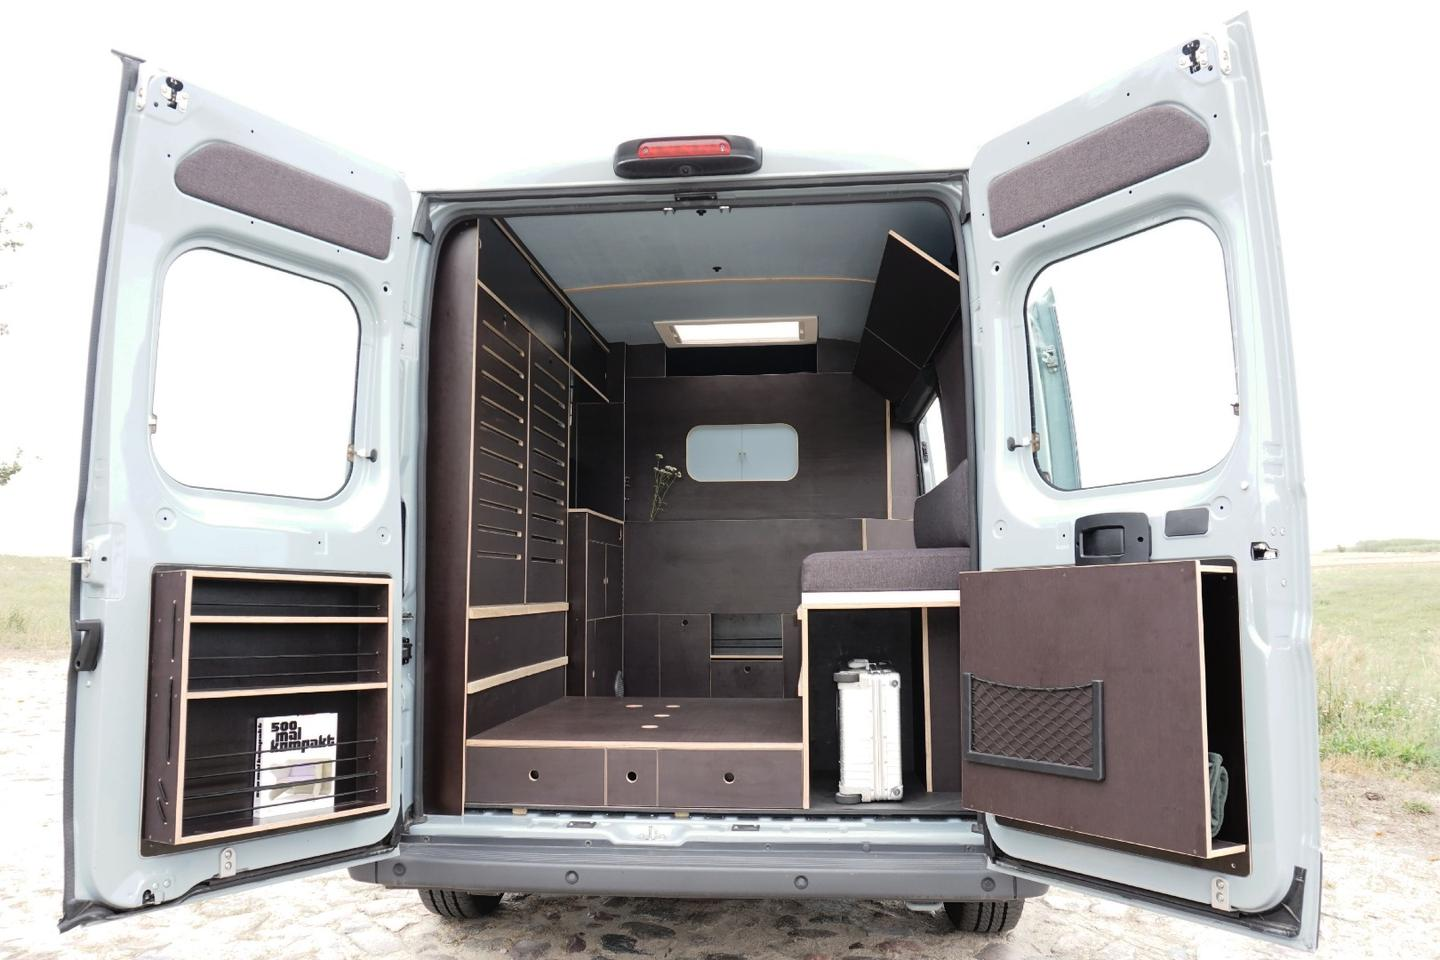 The interior cabinetry can be removed within minutes, allowing the van to be used to transport larger goods